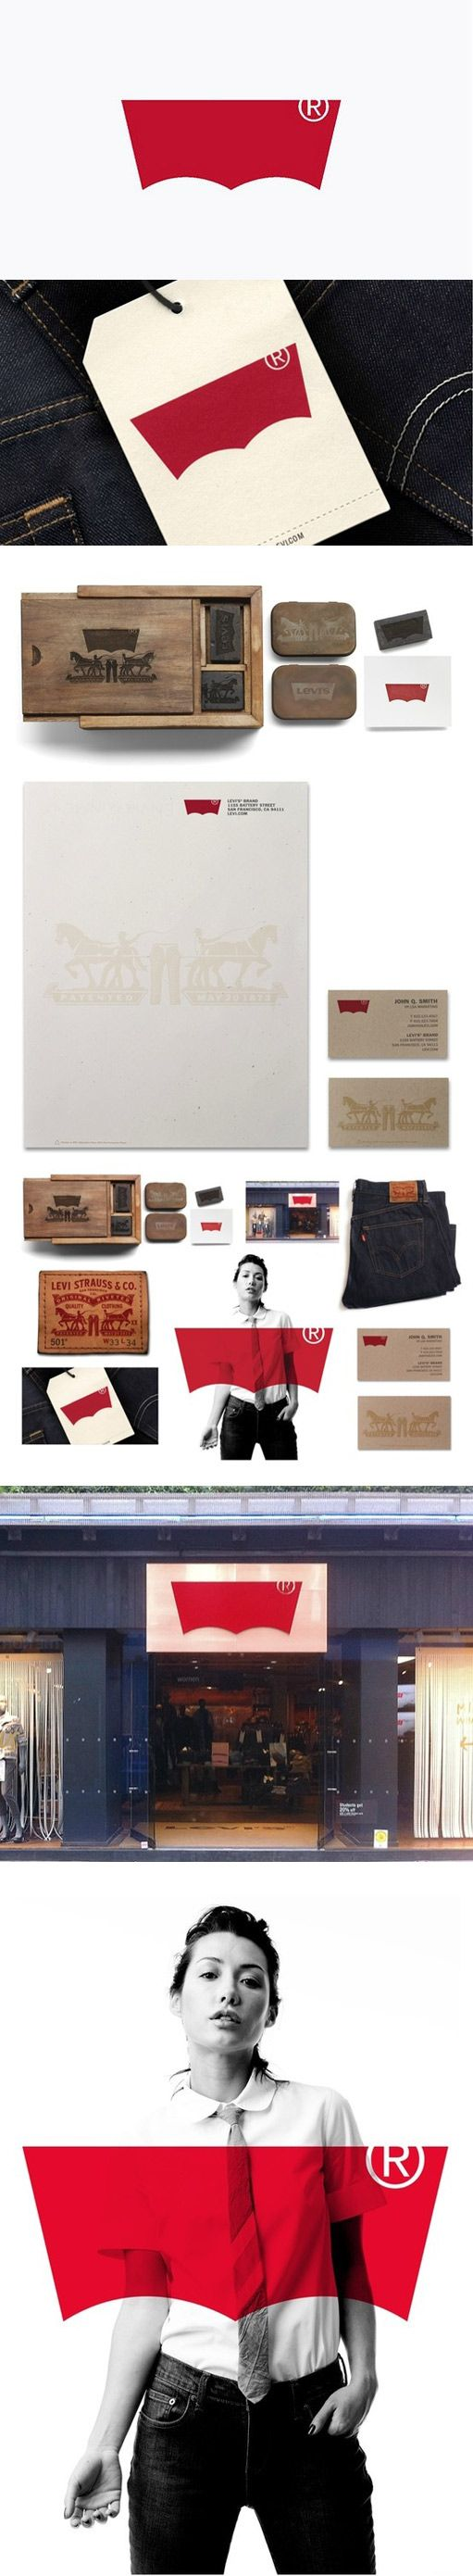 Branding // Levi's Integrated Branding - I saw this in-store last time I was out in NYC. It's really great to see the full system here. Turner Duckworth does a great job of distilling brands down to make them stronger. Great job you guys.